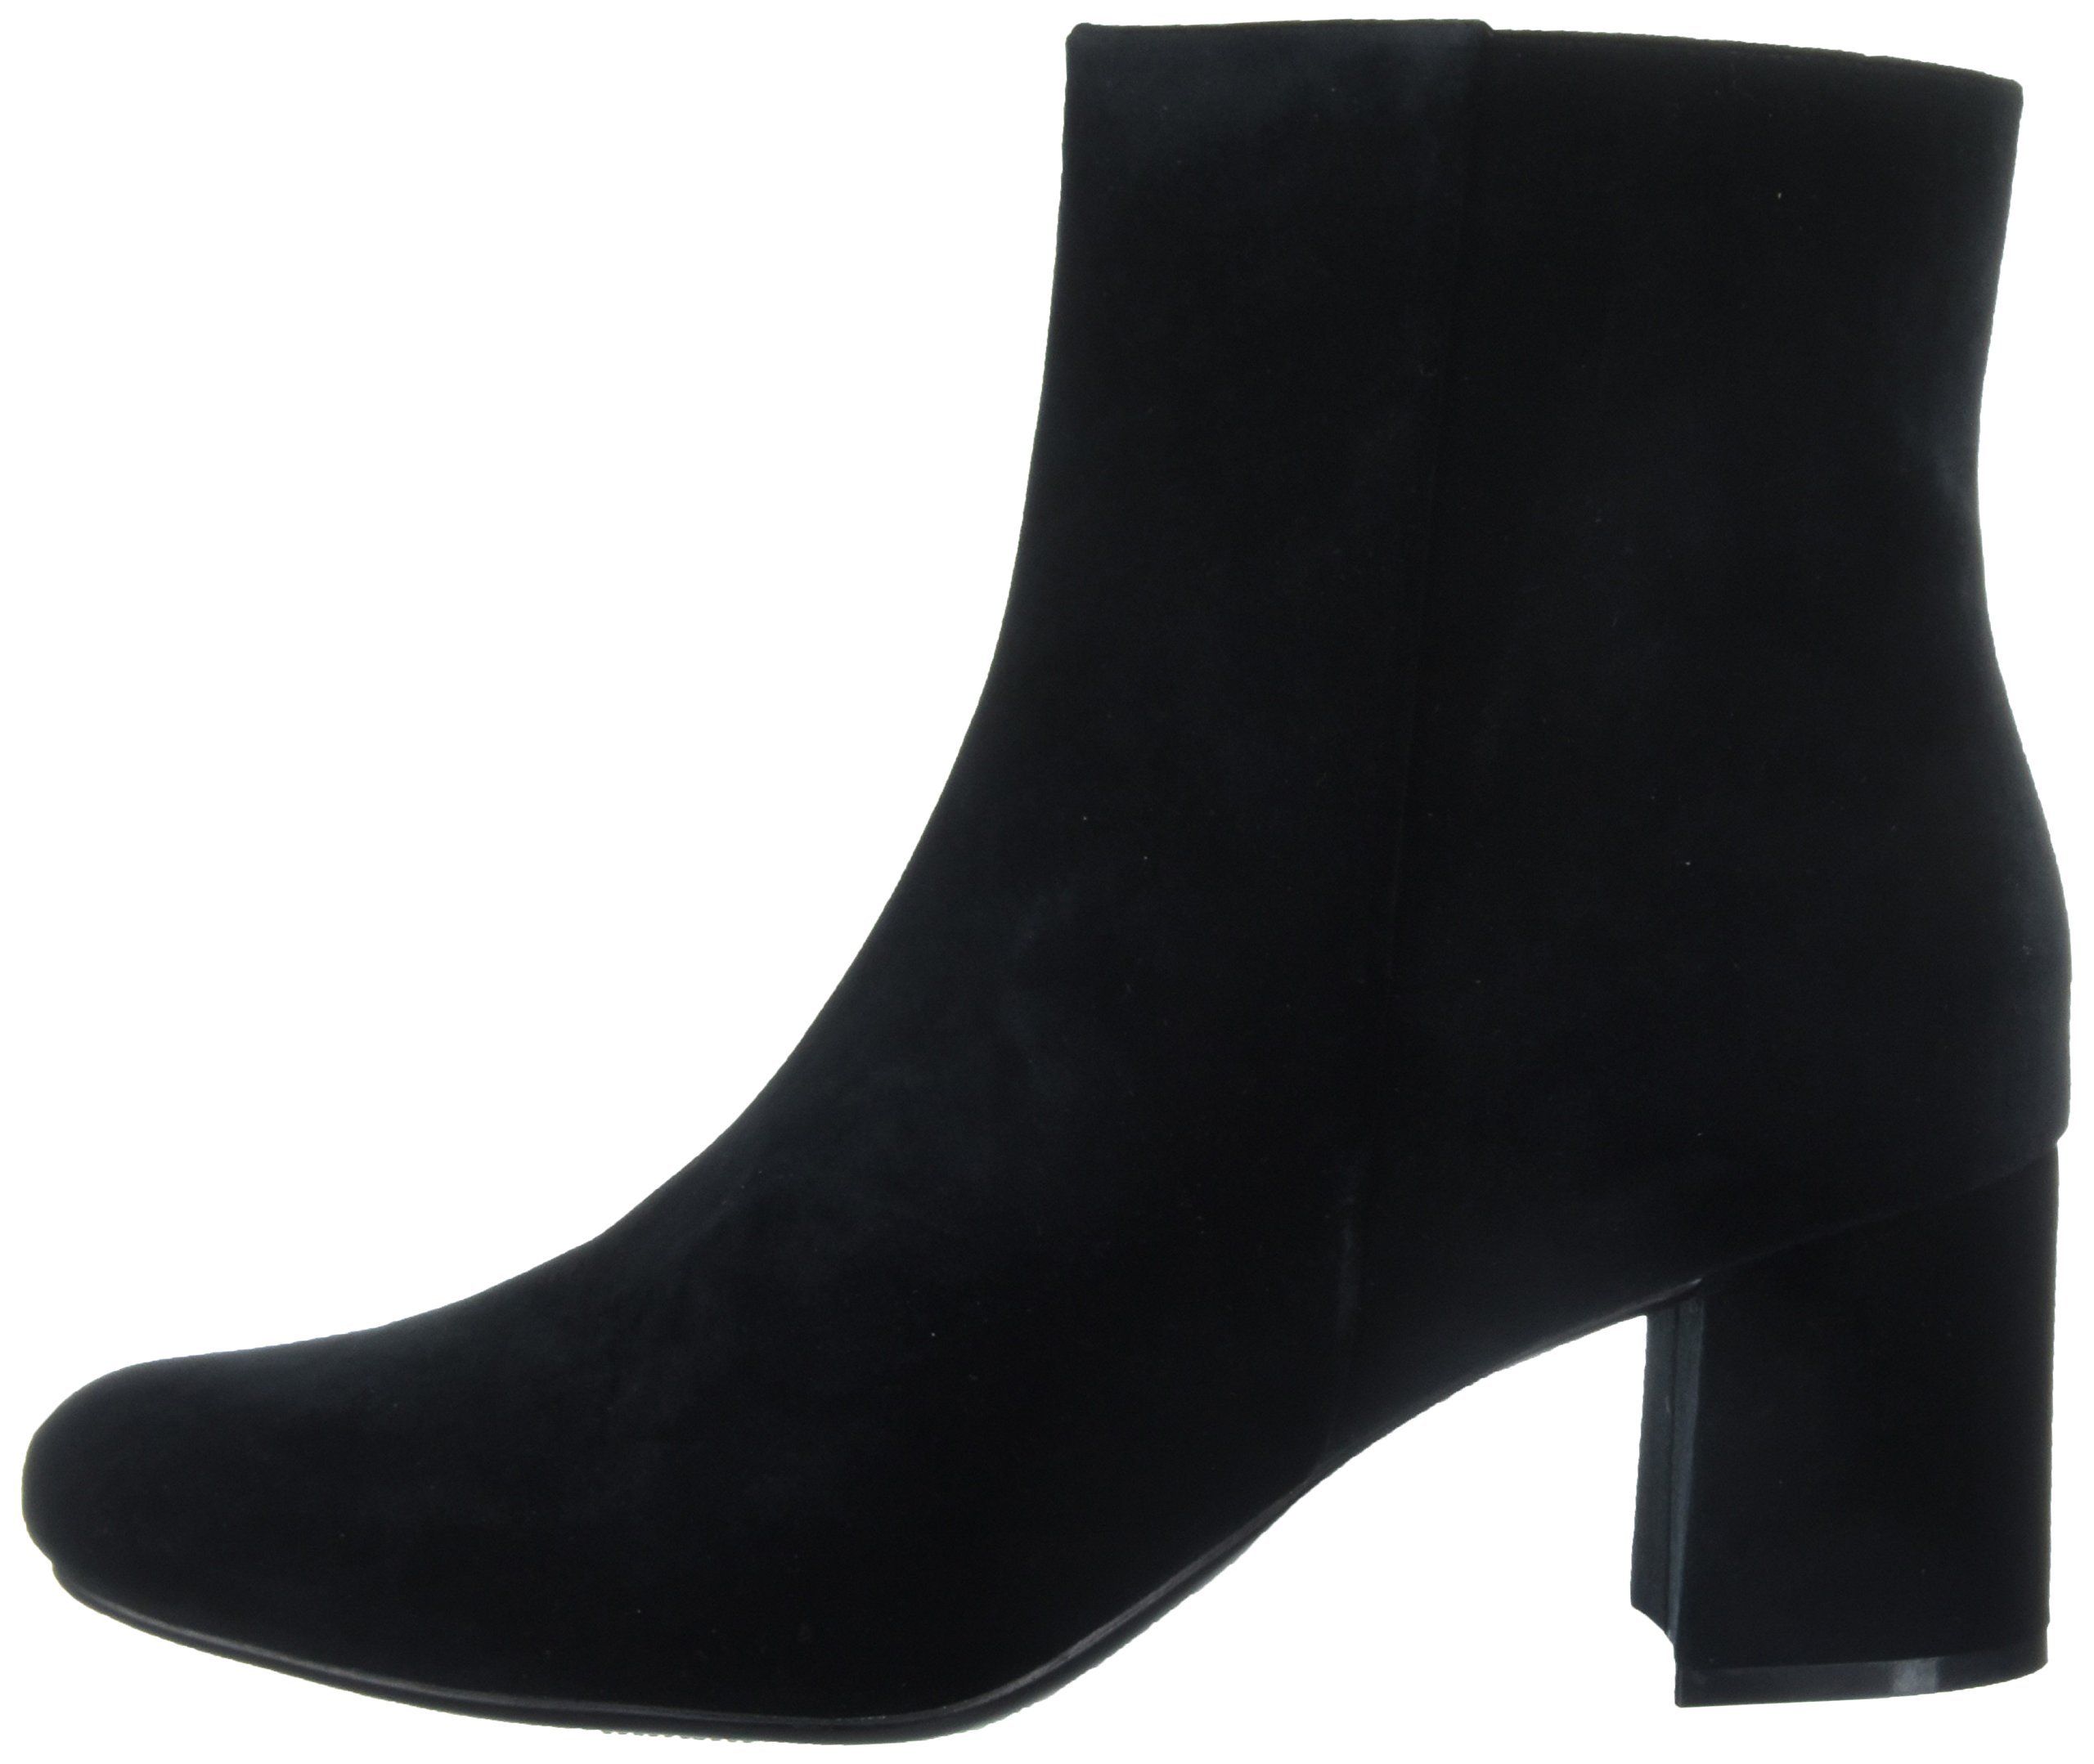 Naturalizer Women's Westing Boot, Black, 6.5 M US by Naturalizer (Image #5)